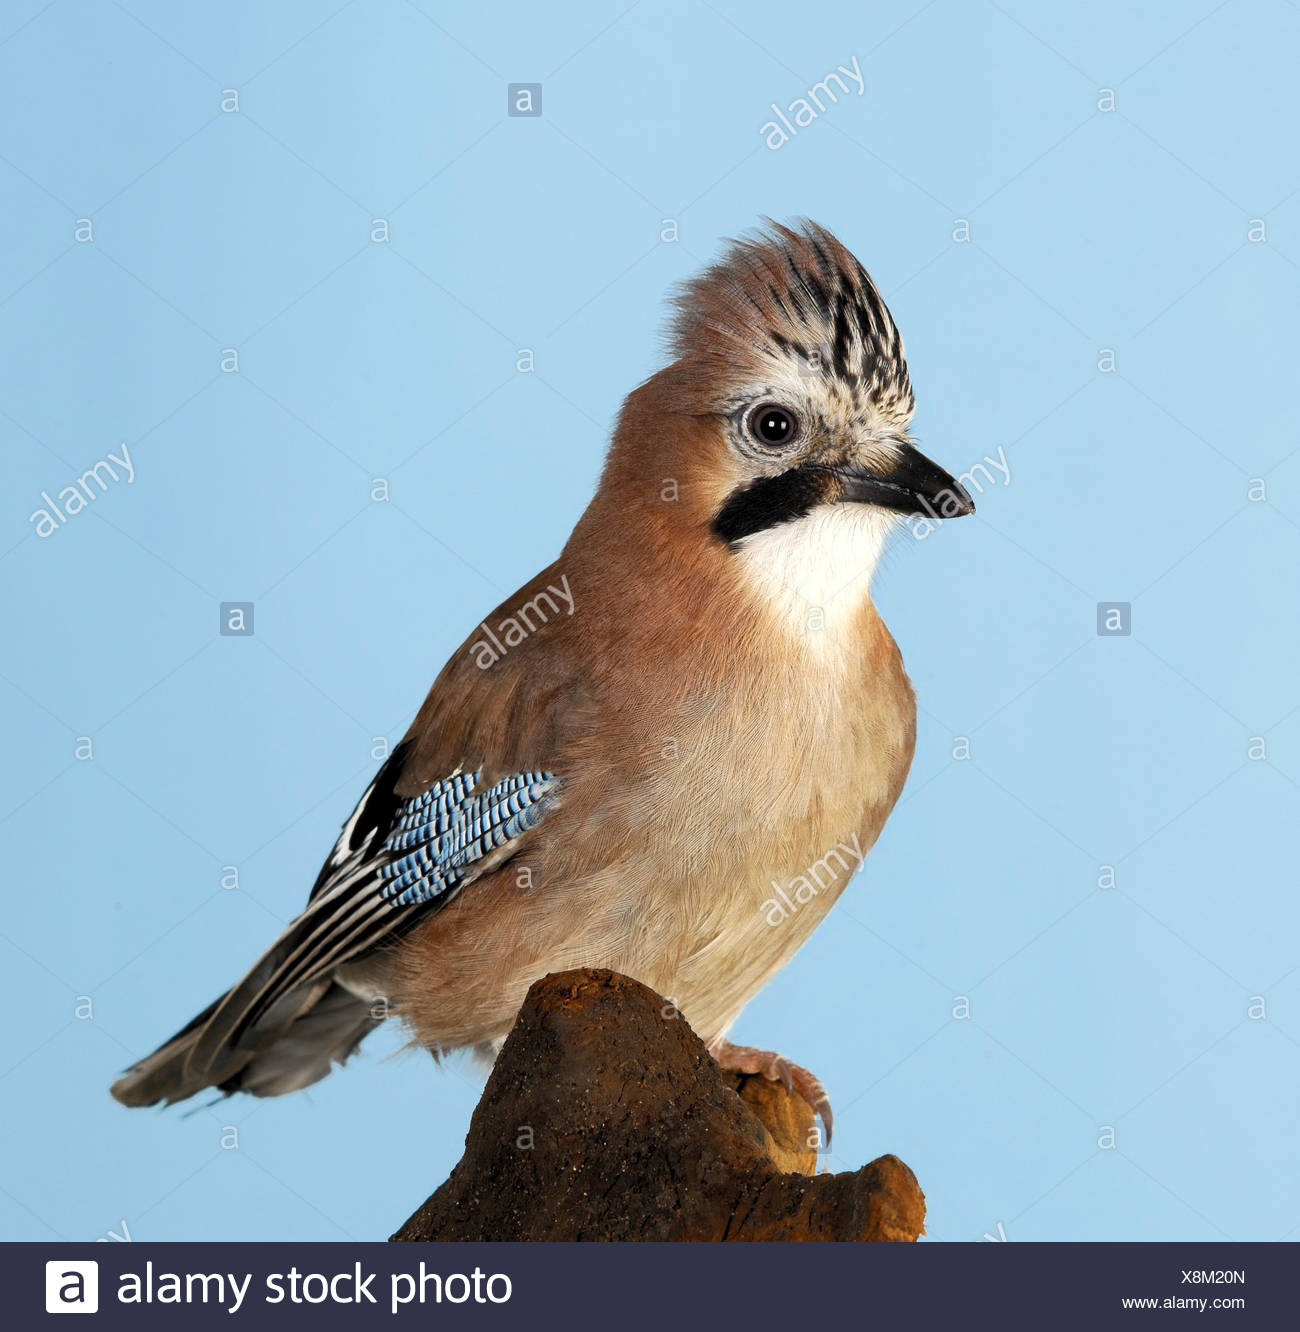 Jay perched on tree stump - Stock Image